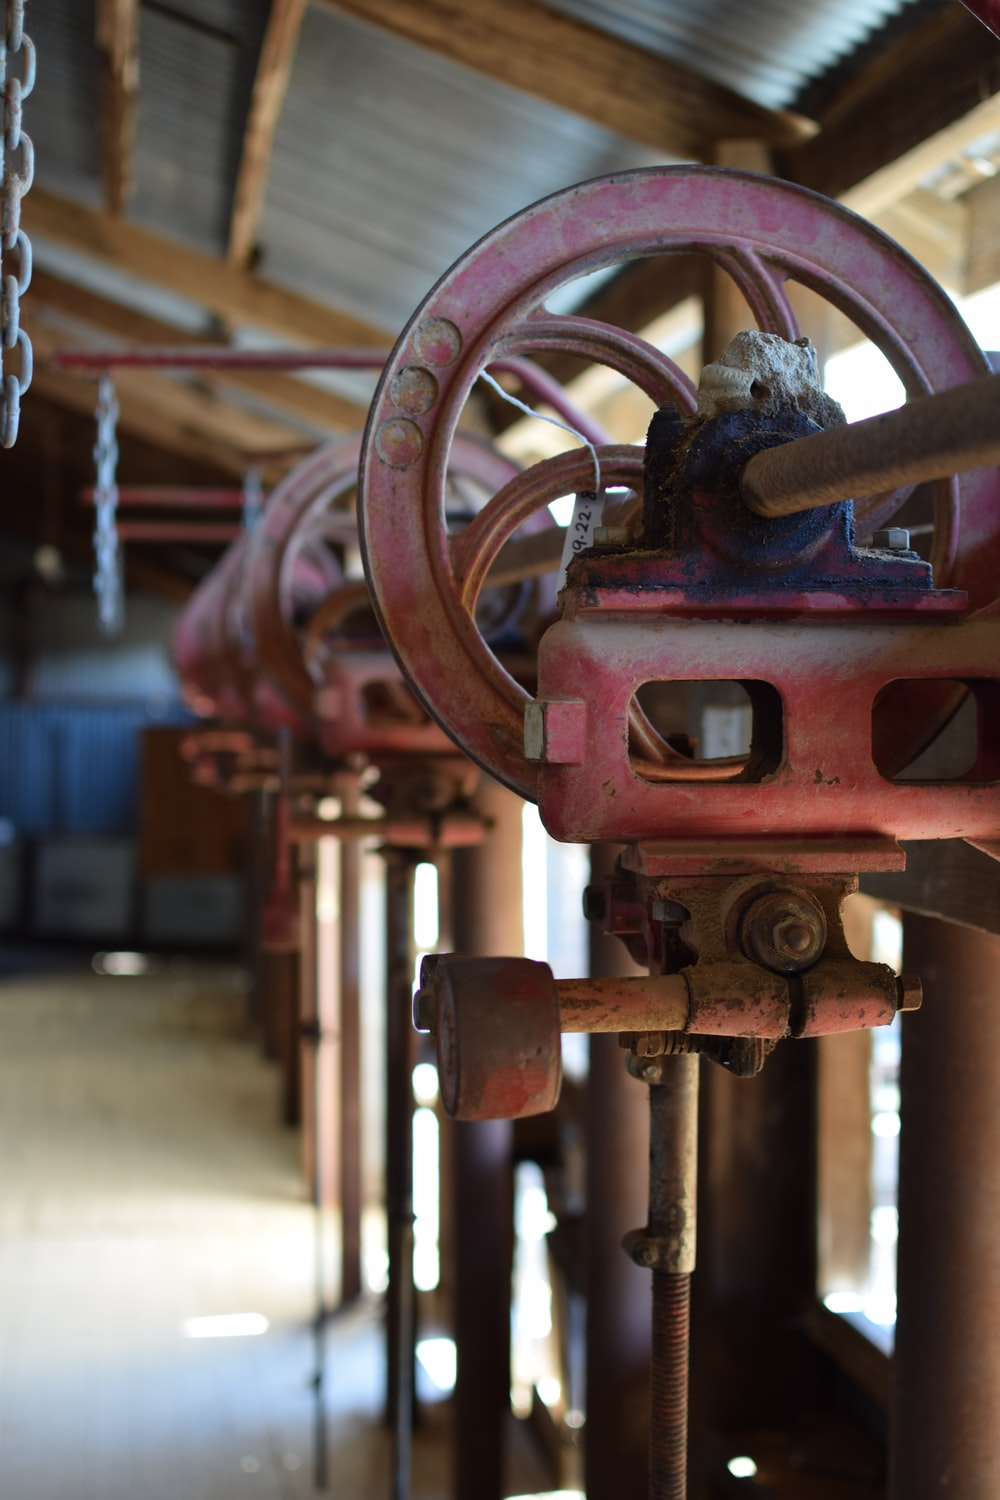 red metal machine in close up photography